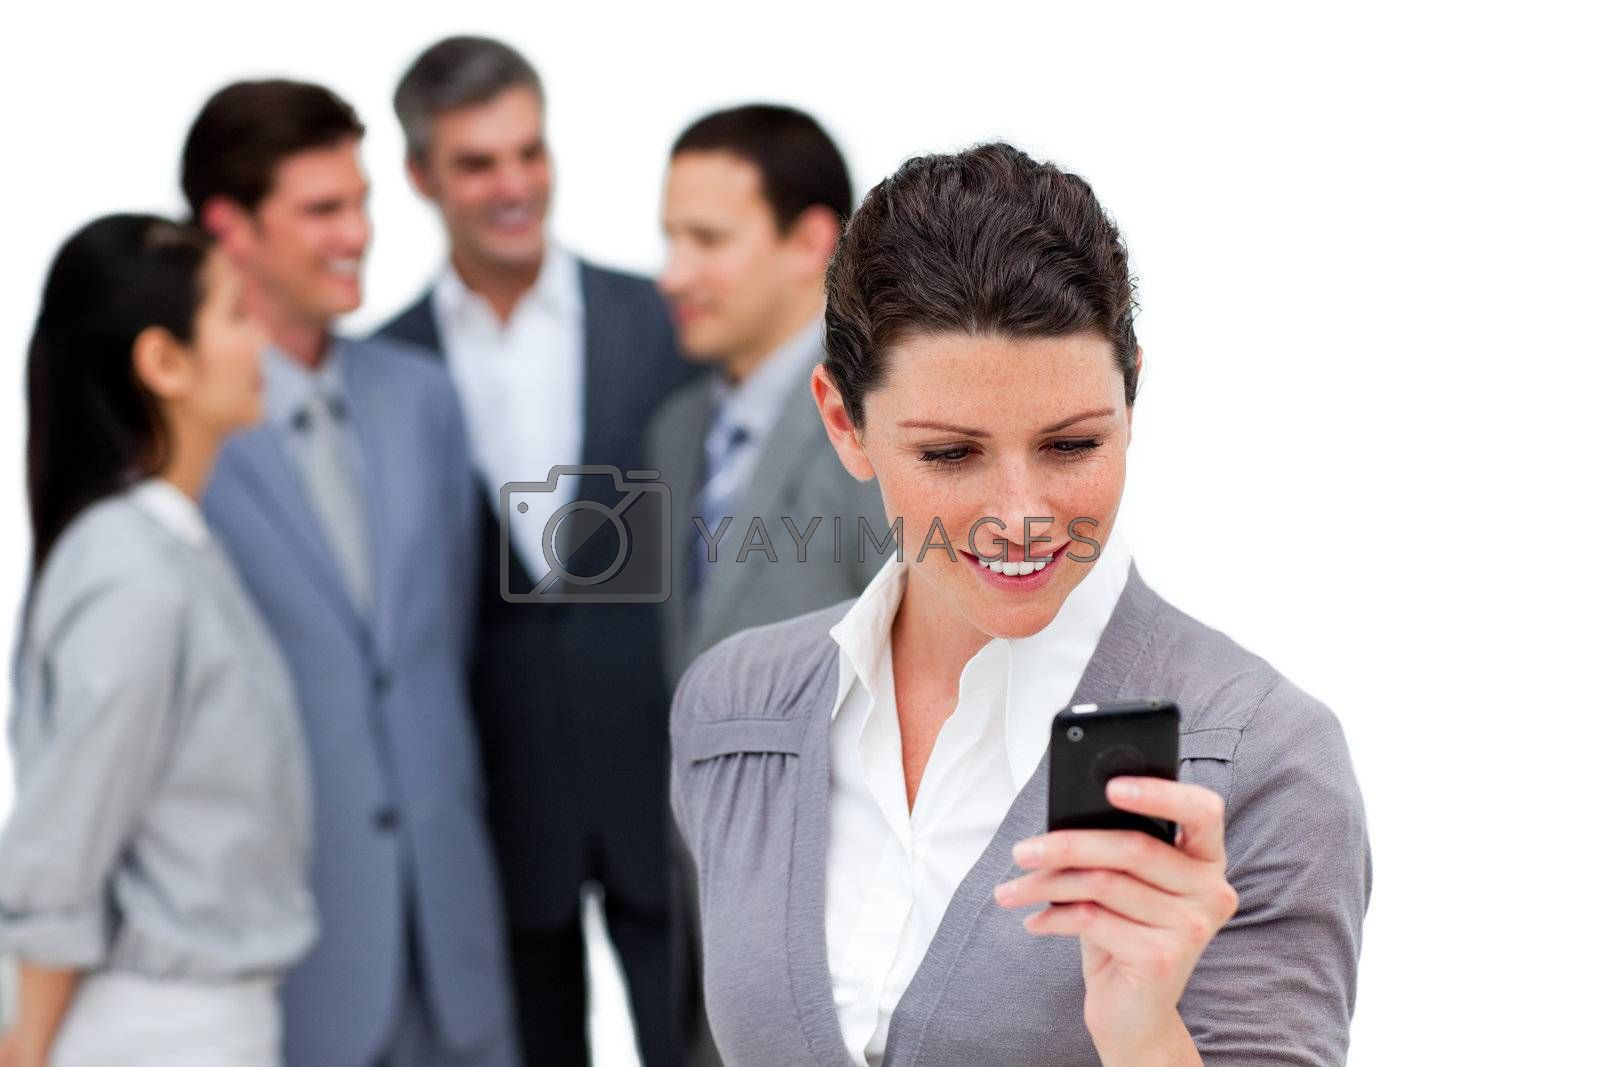 Attractive businesswoman looking at her cellphone in front of her team against a white background